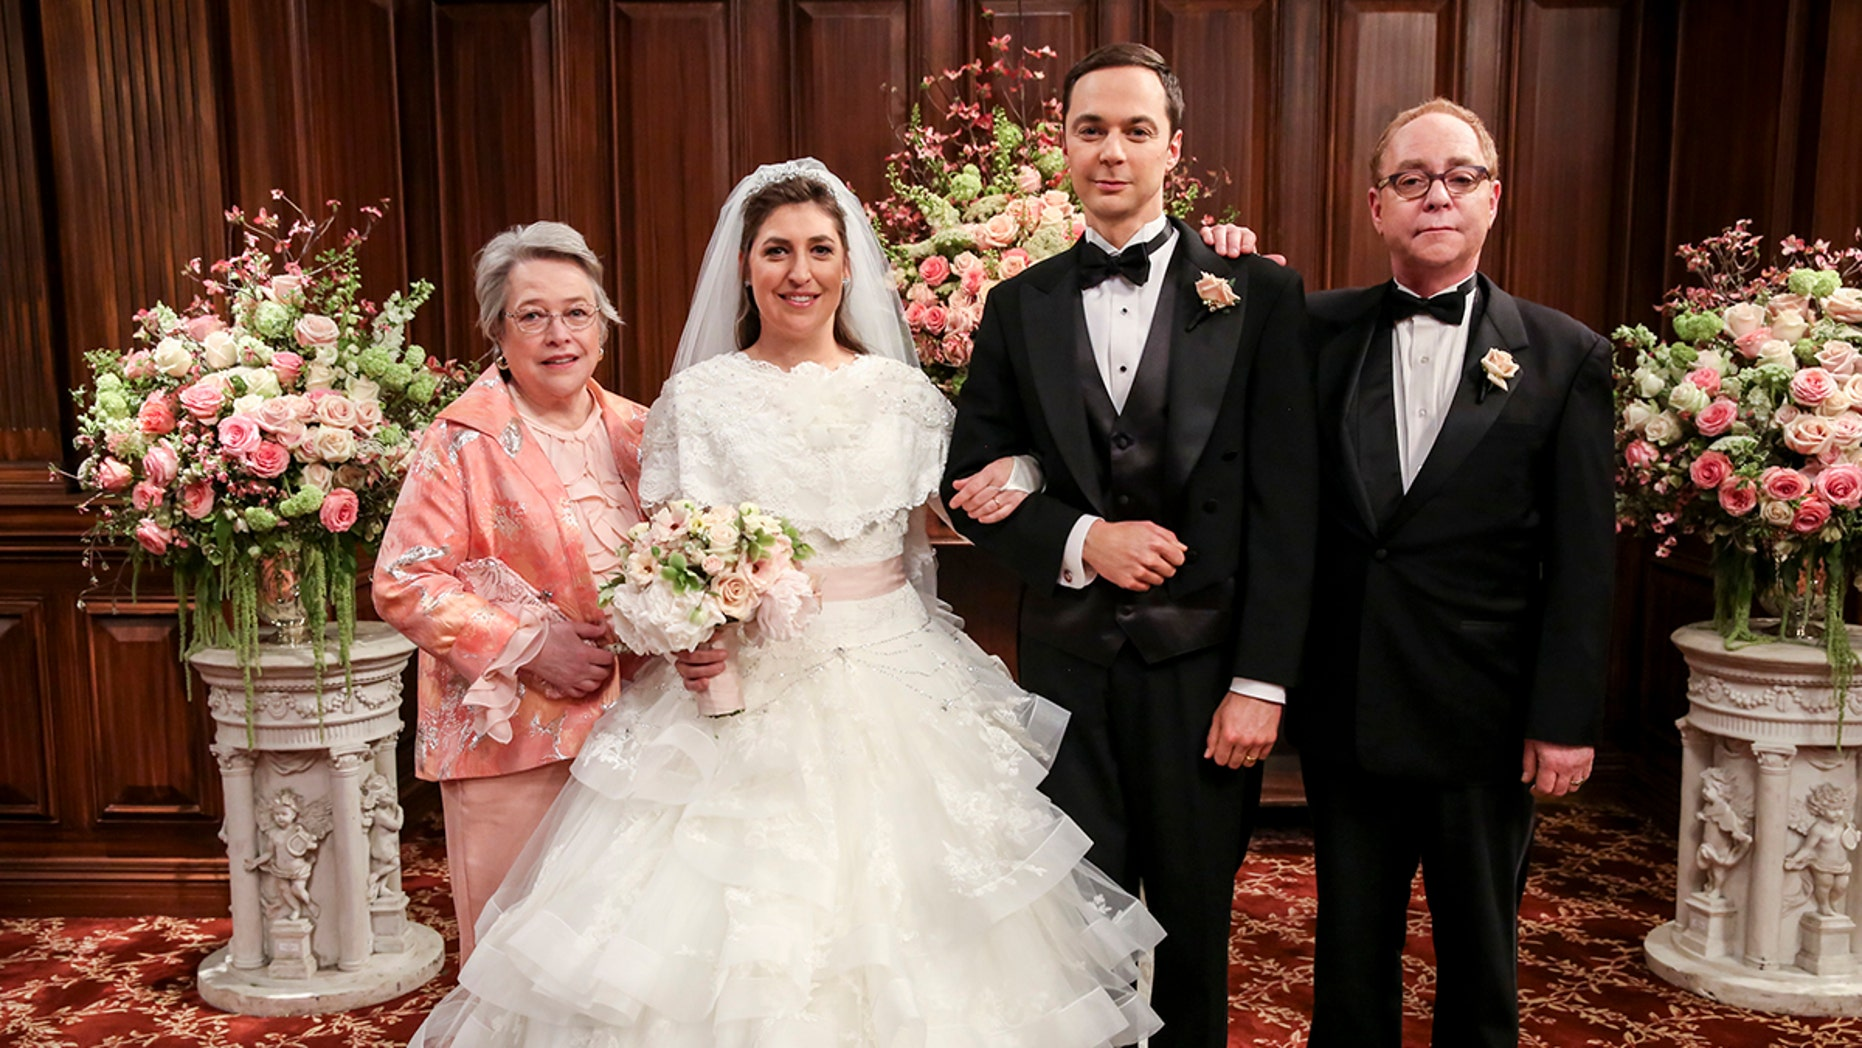 """""""The Bow Tie Asymmetry"""" - Pictured Behind the Scenes: Mrs. Fowler (Kathy Bates), Amy Farrah Fowler (Mayim Bialik), Sheldon Cooper (Jim Parsons) and Mr. Fowler (Teller). When Amy's parents and Sheldon's family arrive for the wedding, everybody is focused on making sure all goes according to plan -- everyone except the bride and groom, on the 11th season finale of THE BIG BANG THEORY, Thursday, May 10 (8:00-8:31 PM, ET/PT) on the CBS Television Network. Photo: Michael Yarish/CBS ©2018 CBS Broadcasting, Inc. All Rights Reserved."""